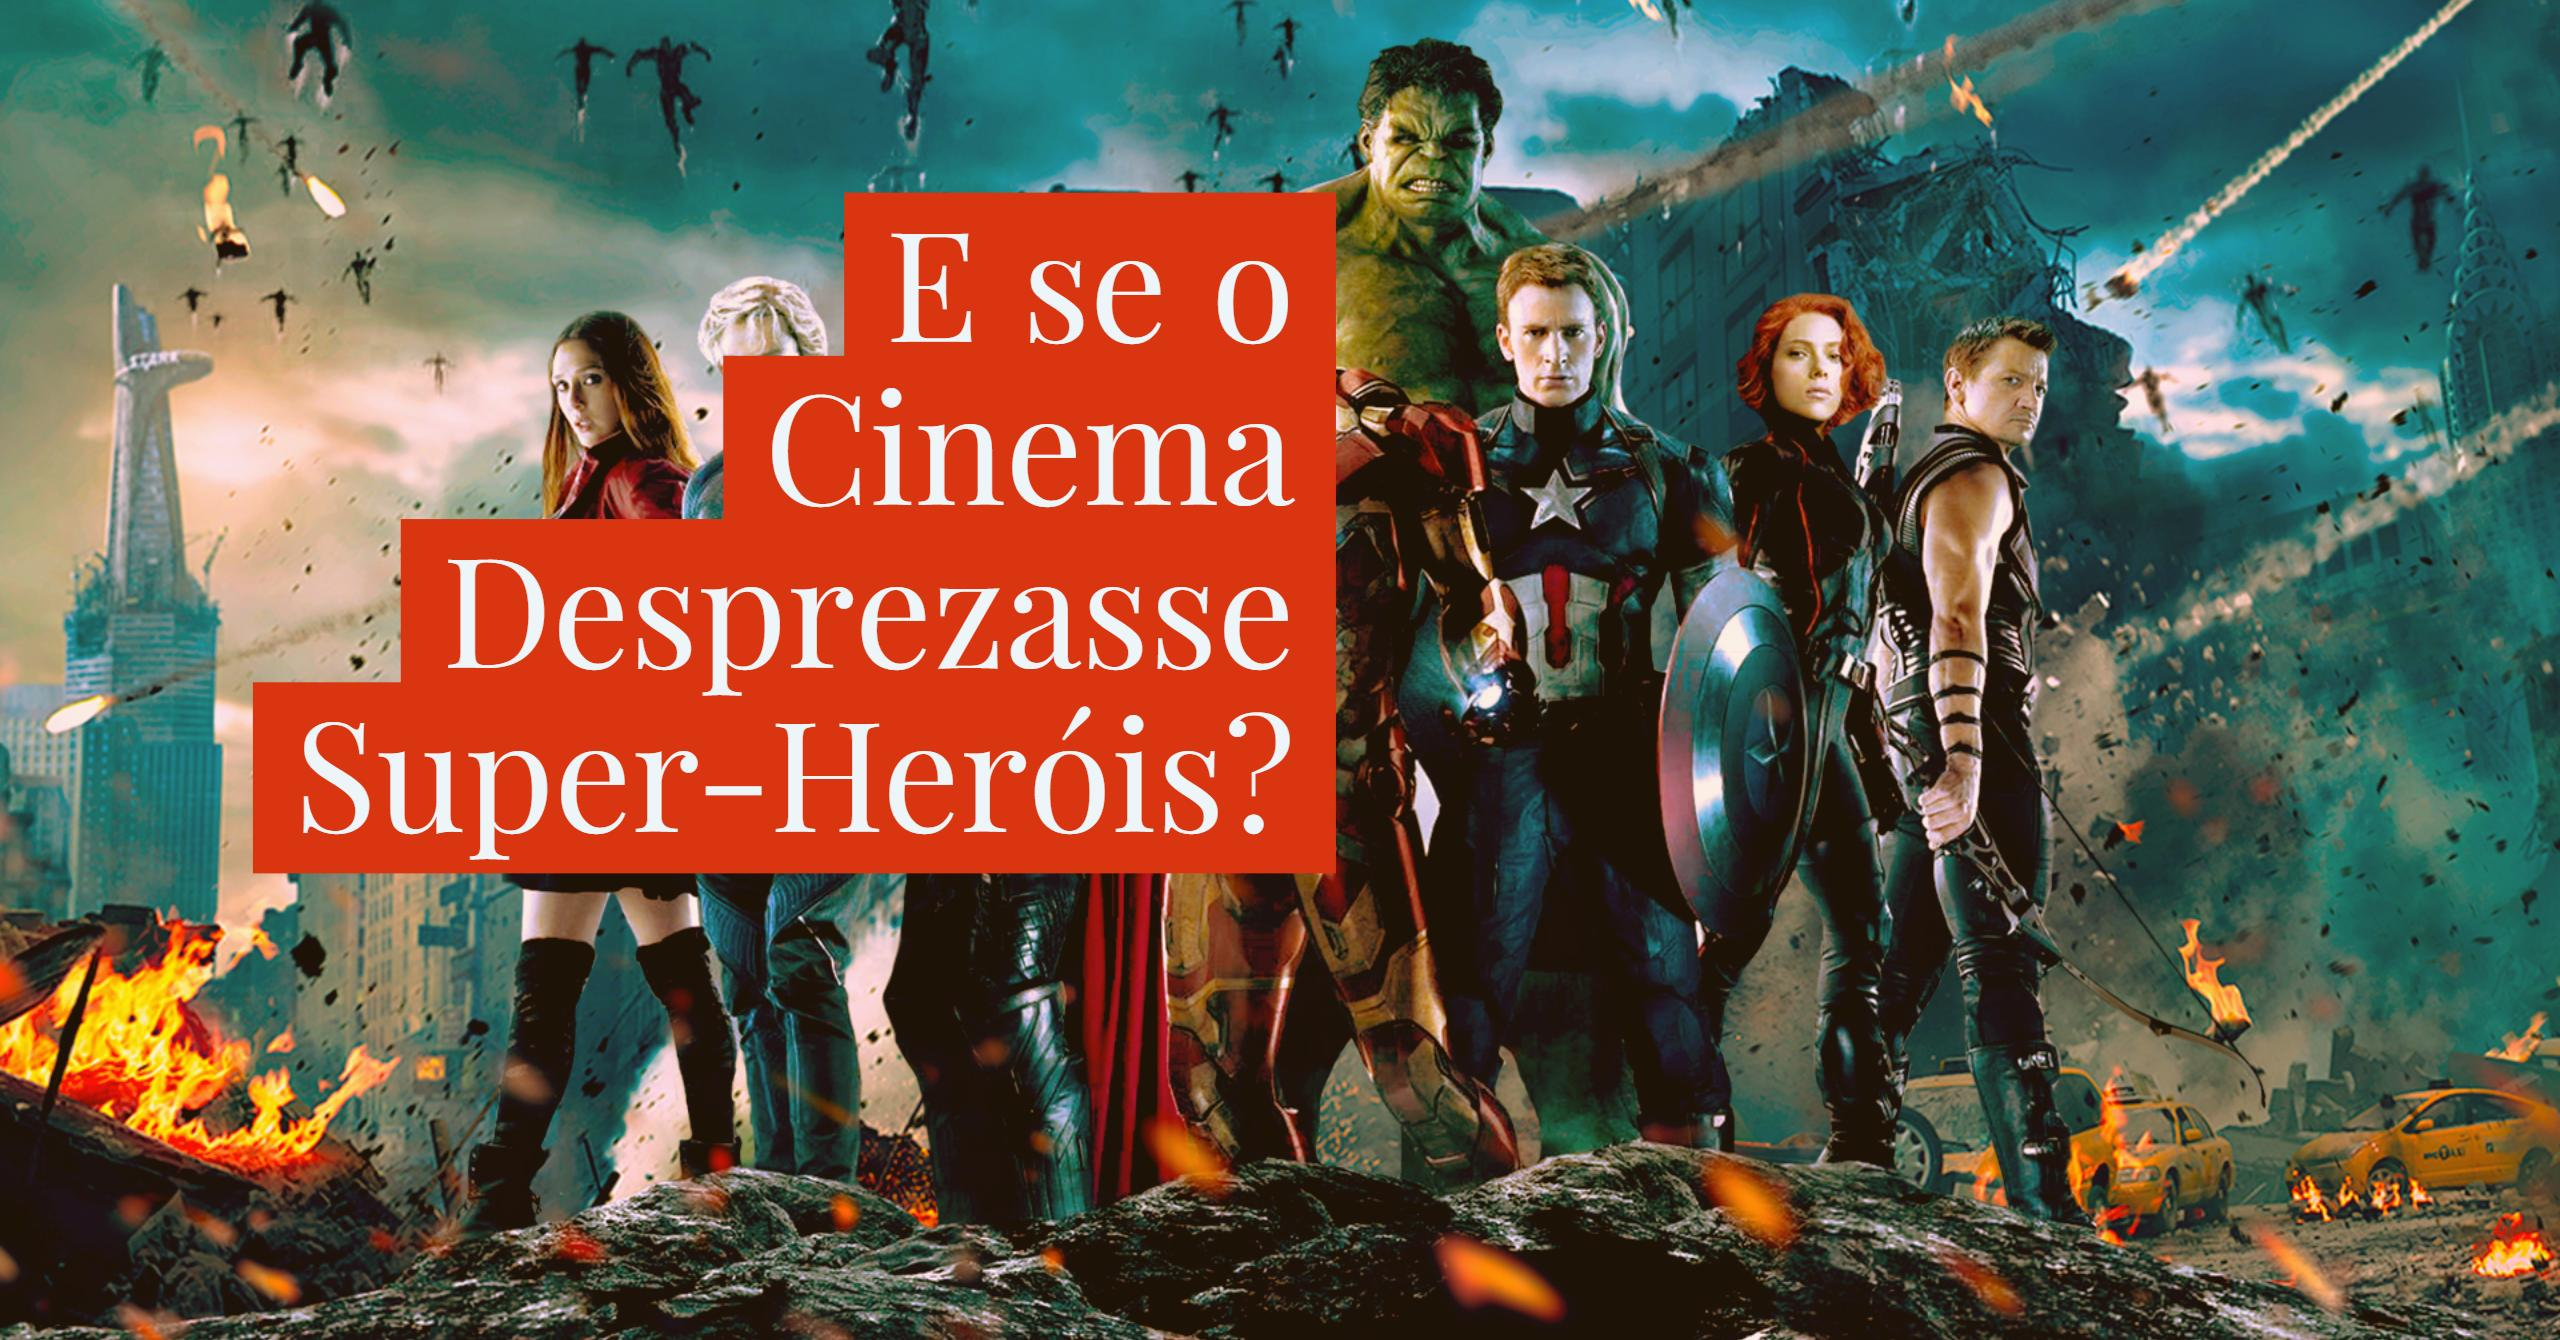 E se o Cinema Desprezasse Super-Heróis